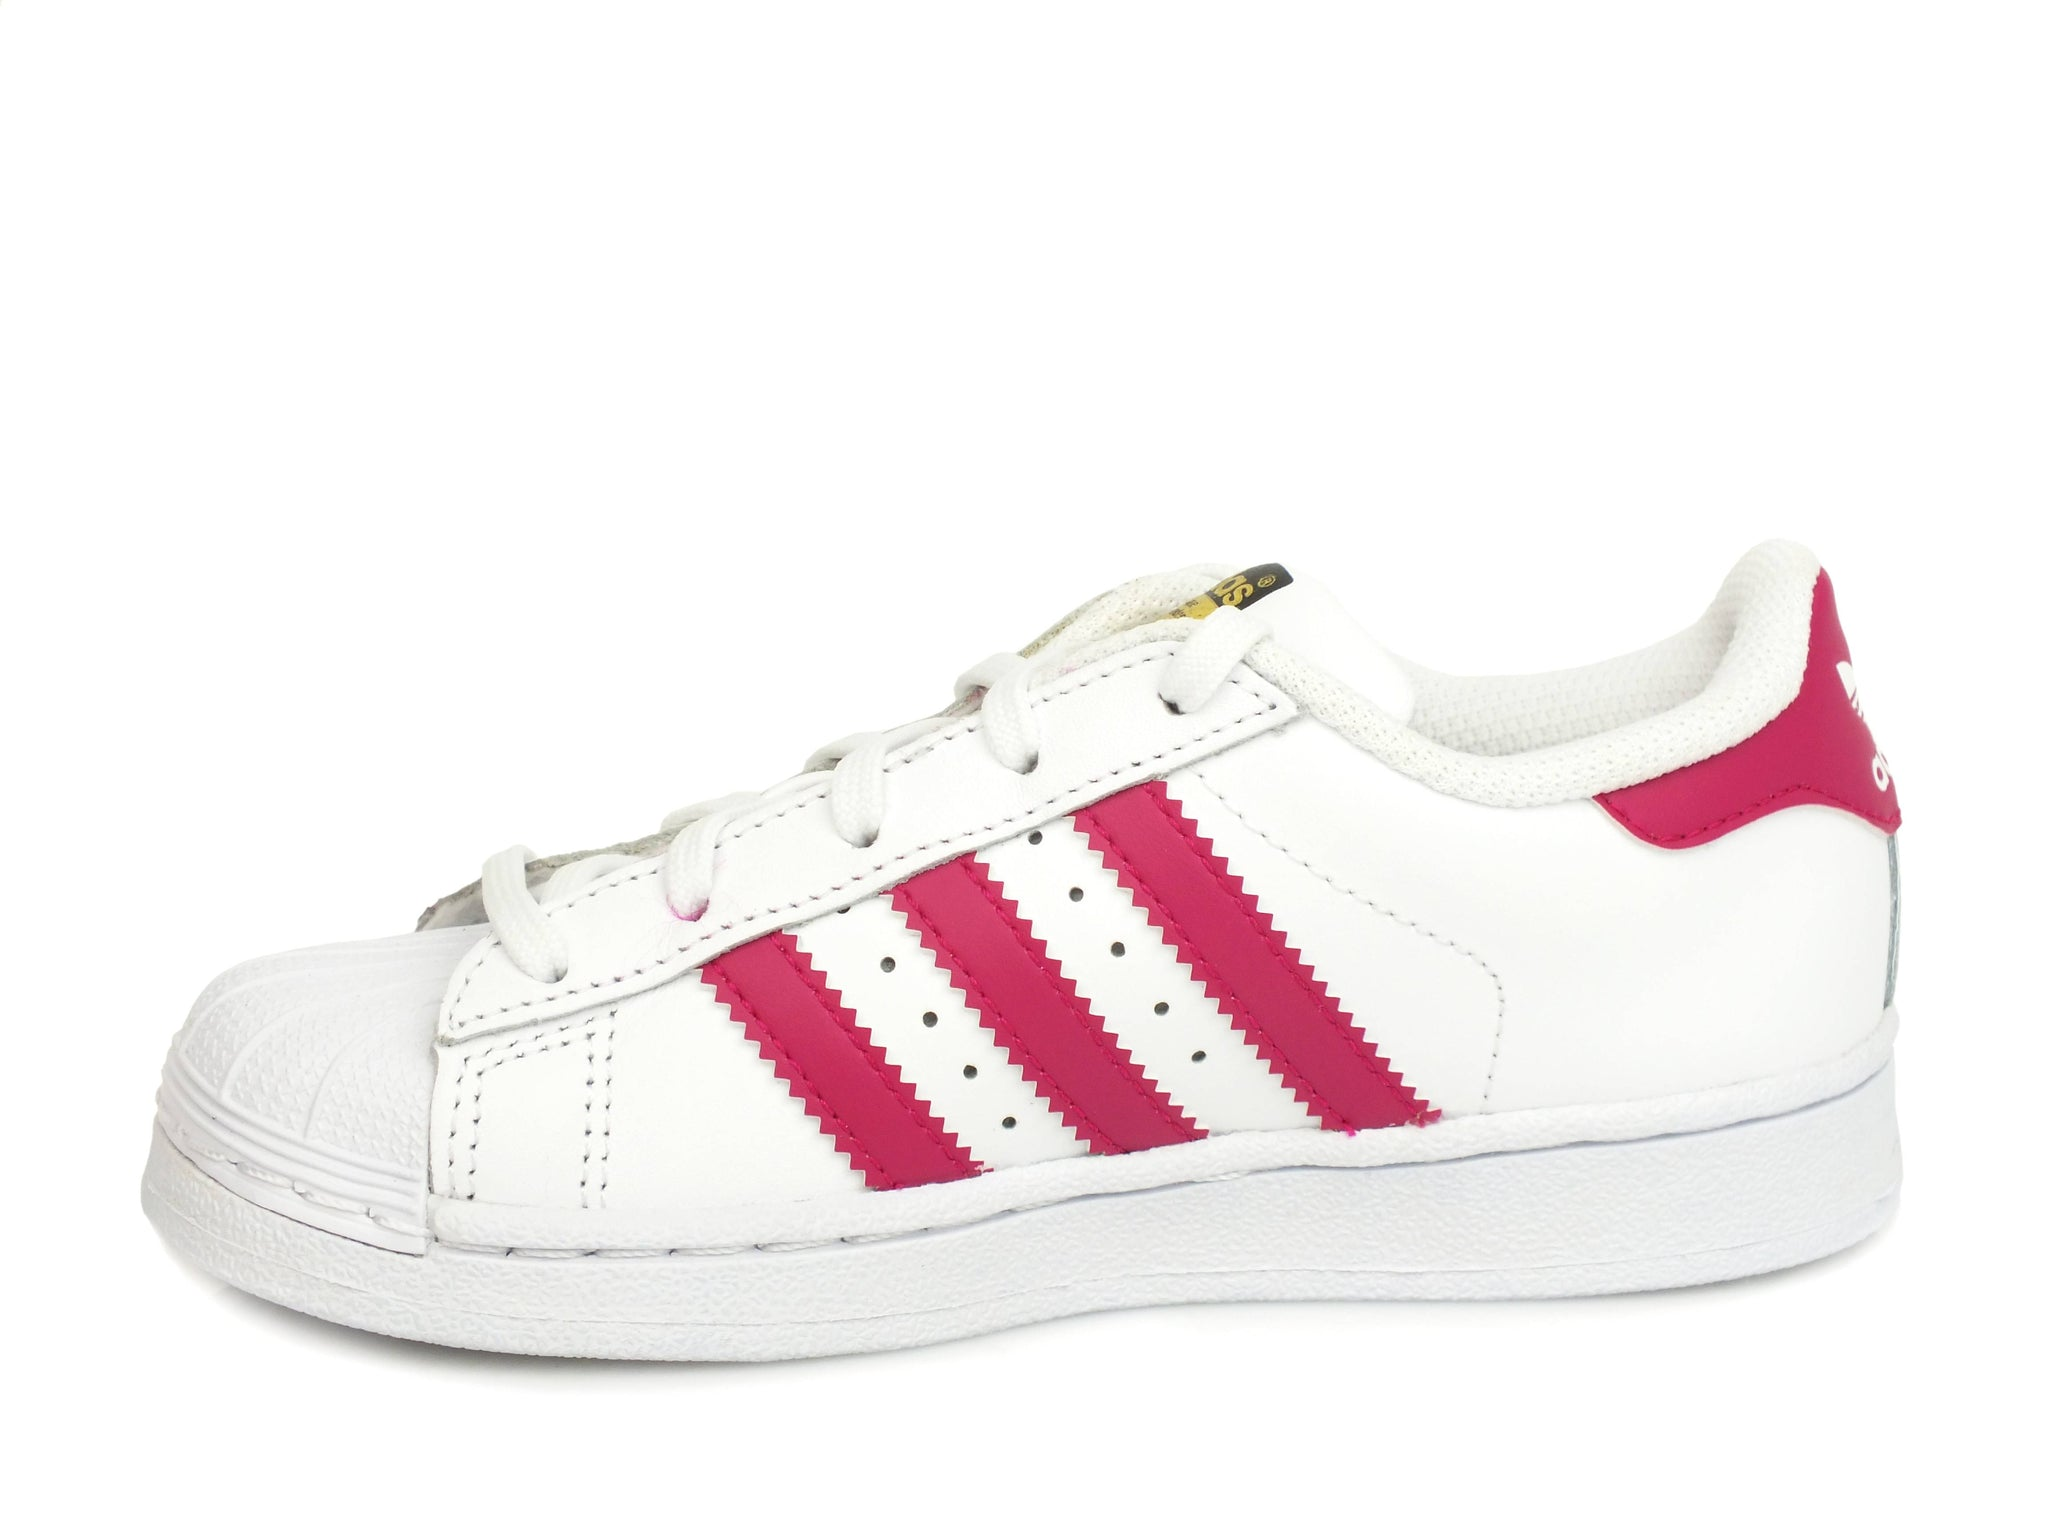 ADIDAS Superstar C White Bopink  BA8382